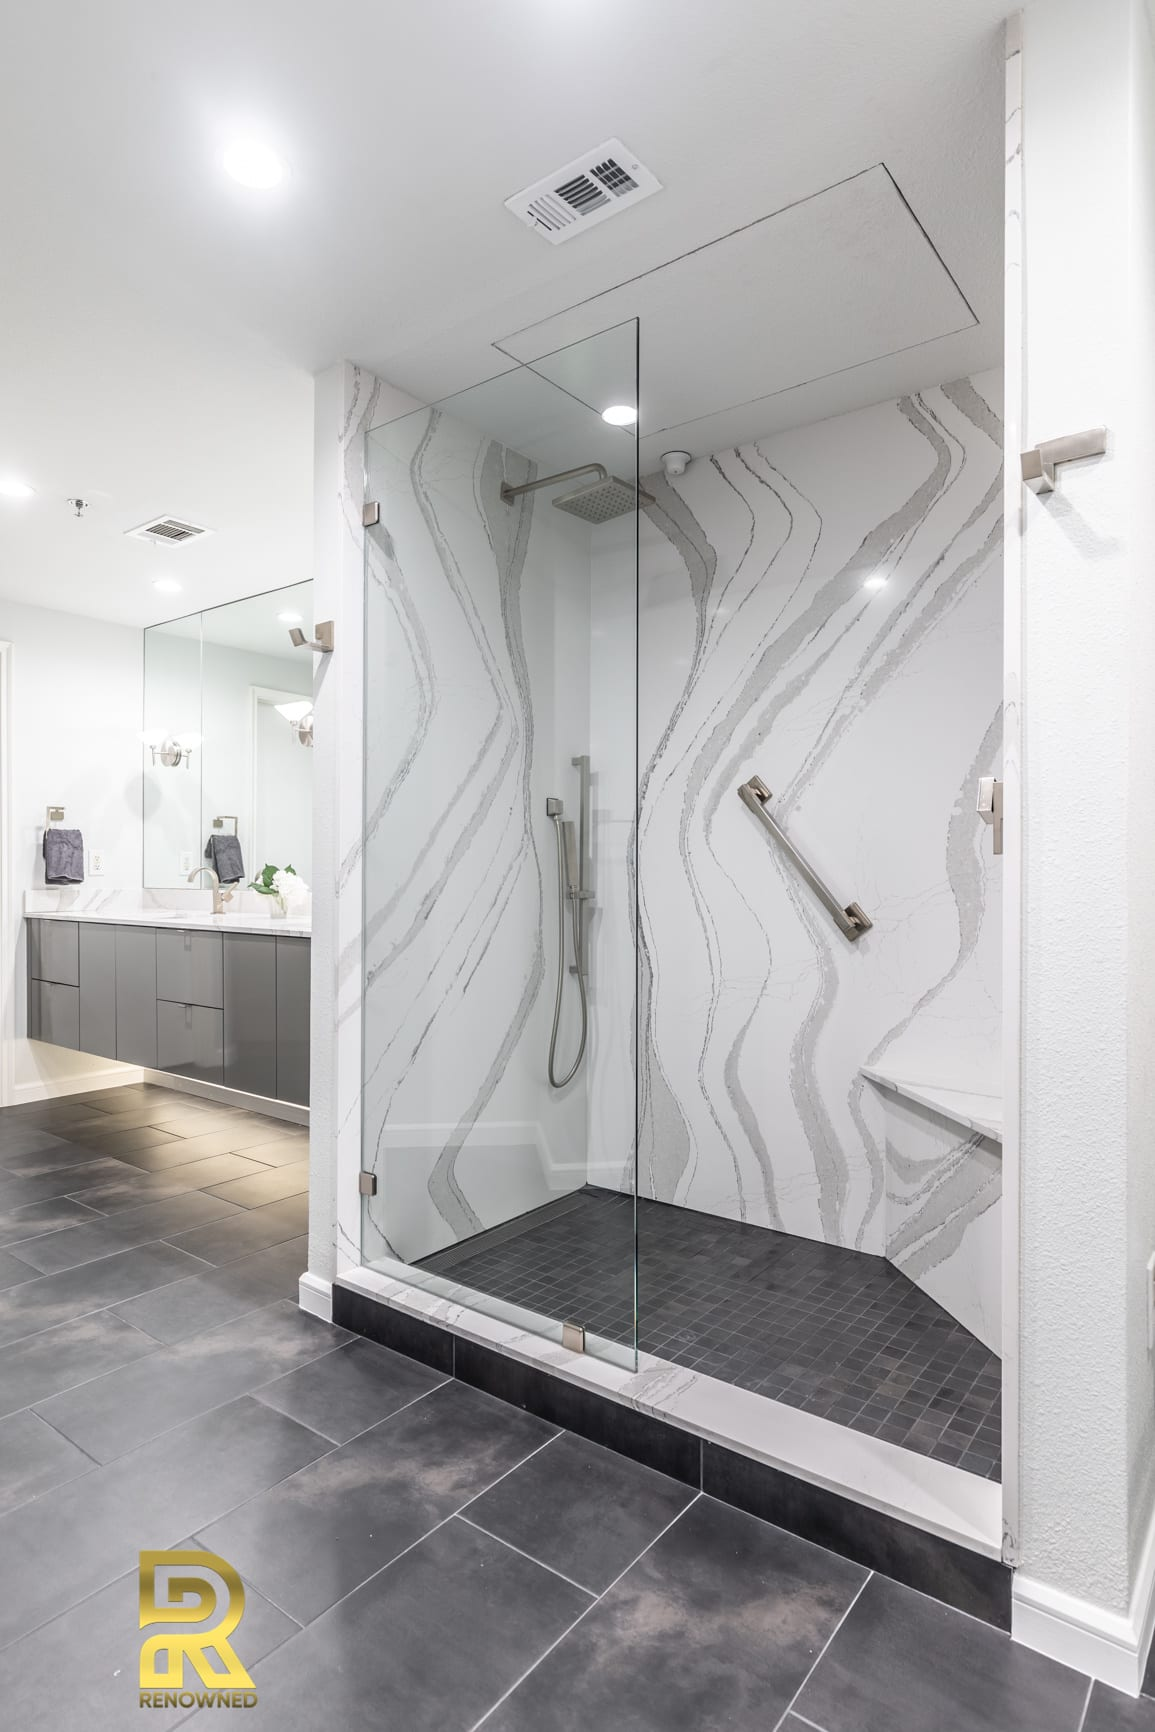 Dallas Condo Master Bathroom Walk-In Shower After Remodeling by Renowned Renovation